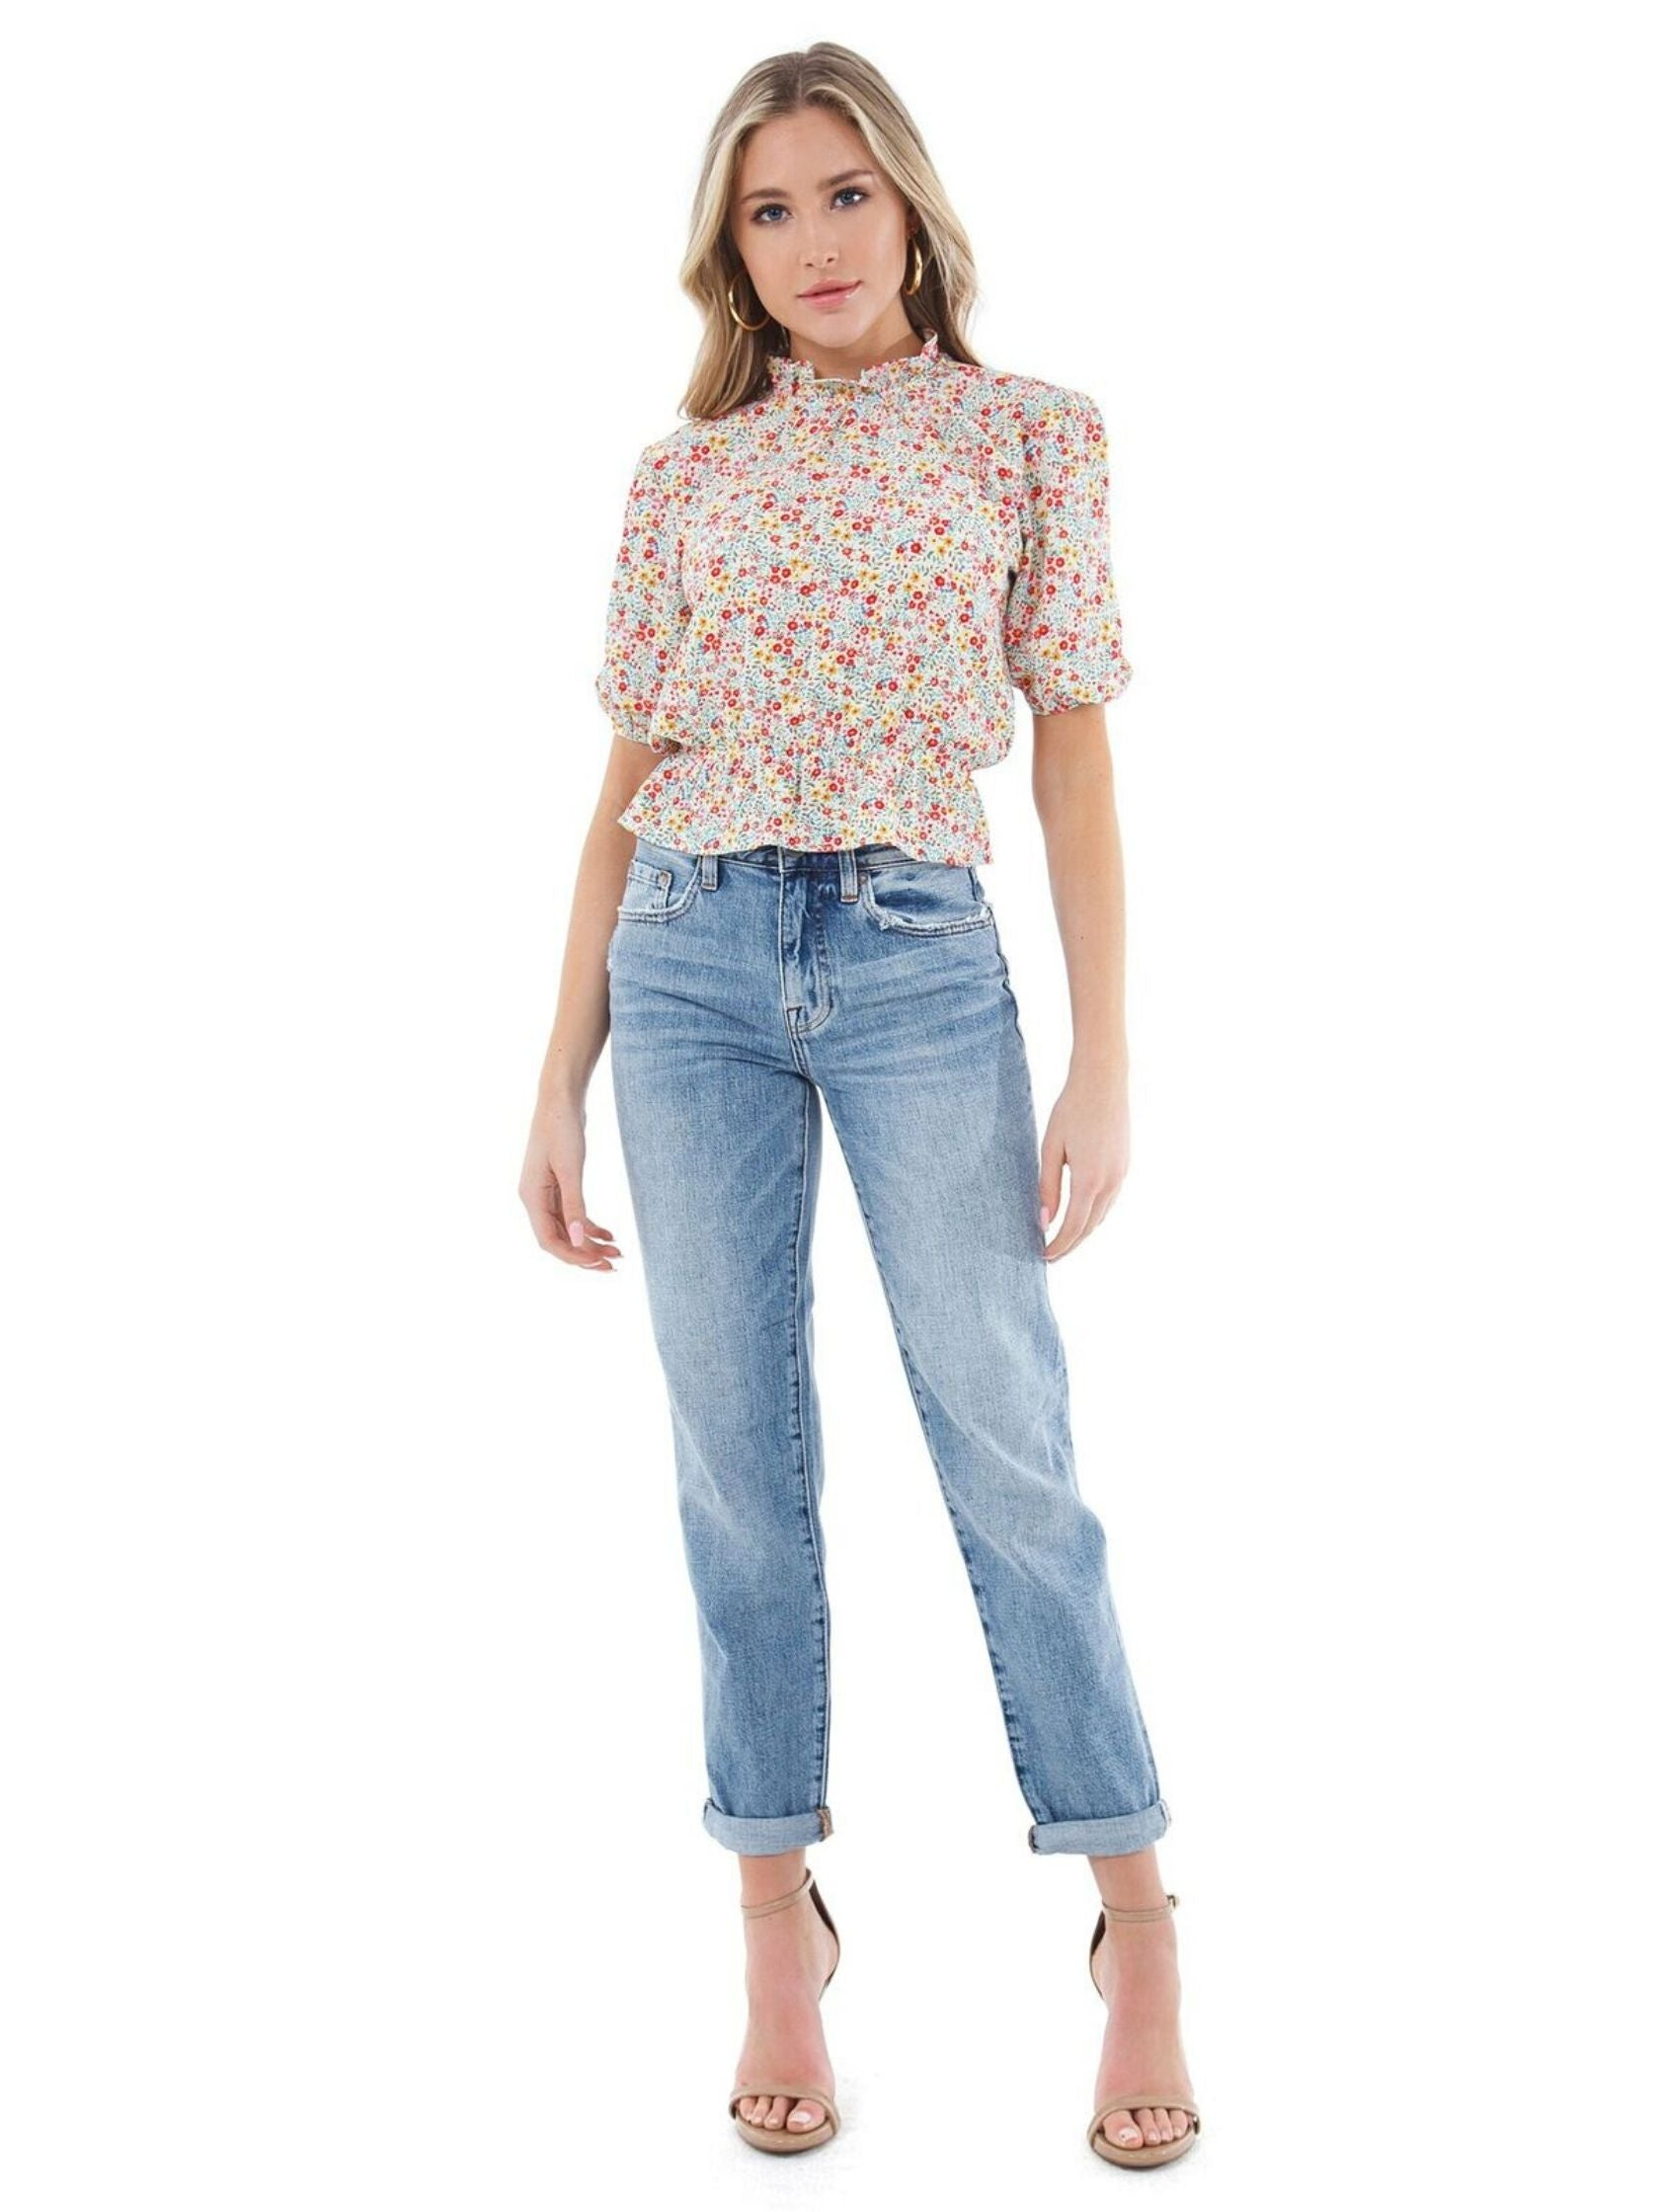 Girl wearing a top rental from BB Dakota called Tea Party Floral Crepe